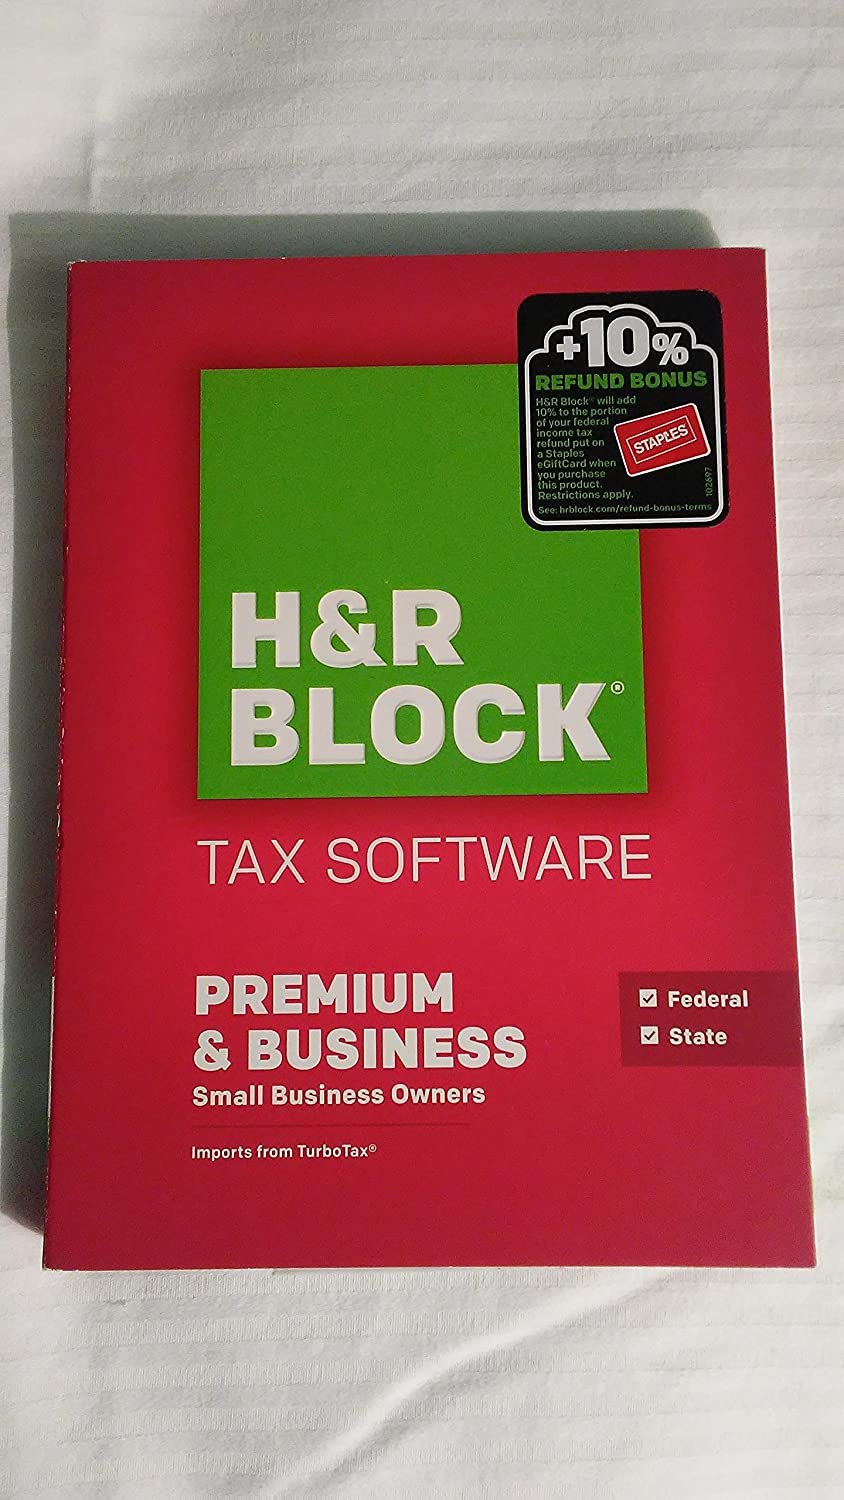 H&R Block Tax Software Premium & Business 2015 Federal & State